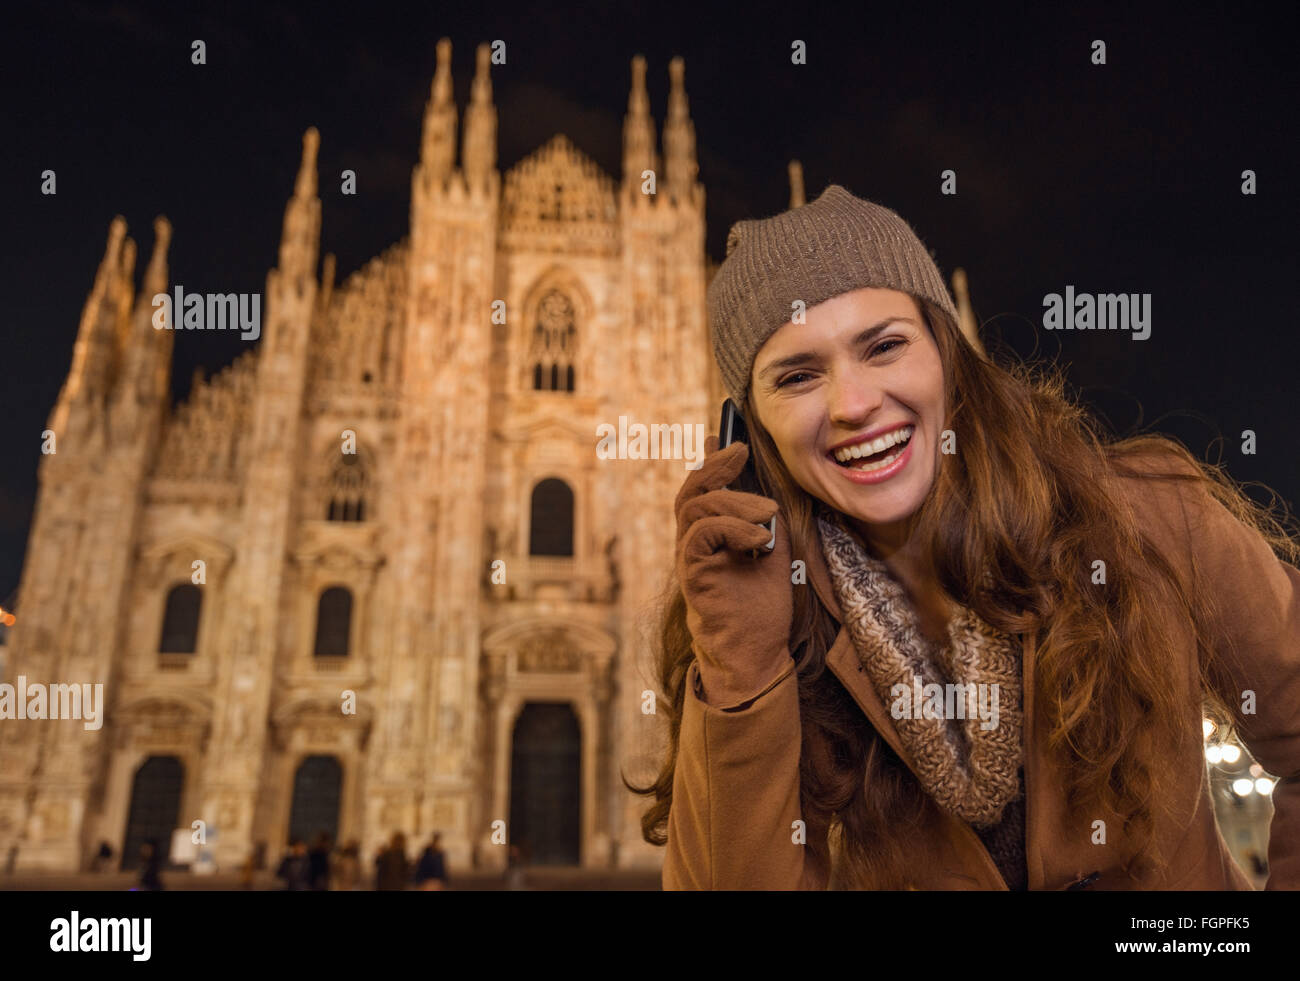 It is time to dress up and take a night tour in ultra-luxurious fashion expert - Milan, Italy. Portrait of smiling - Stock Image